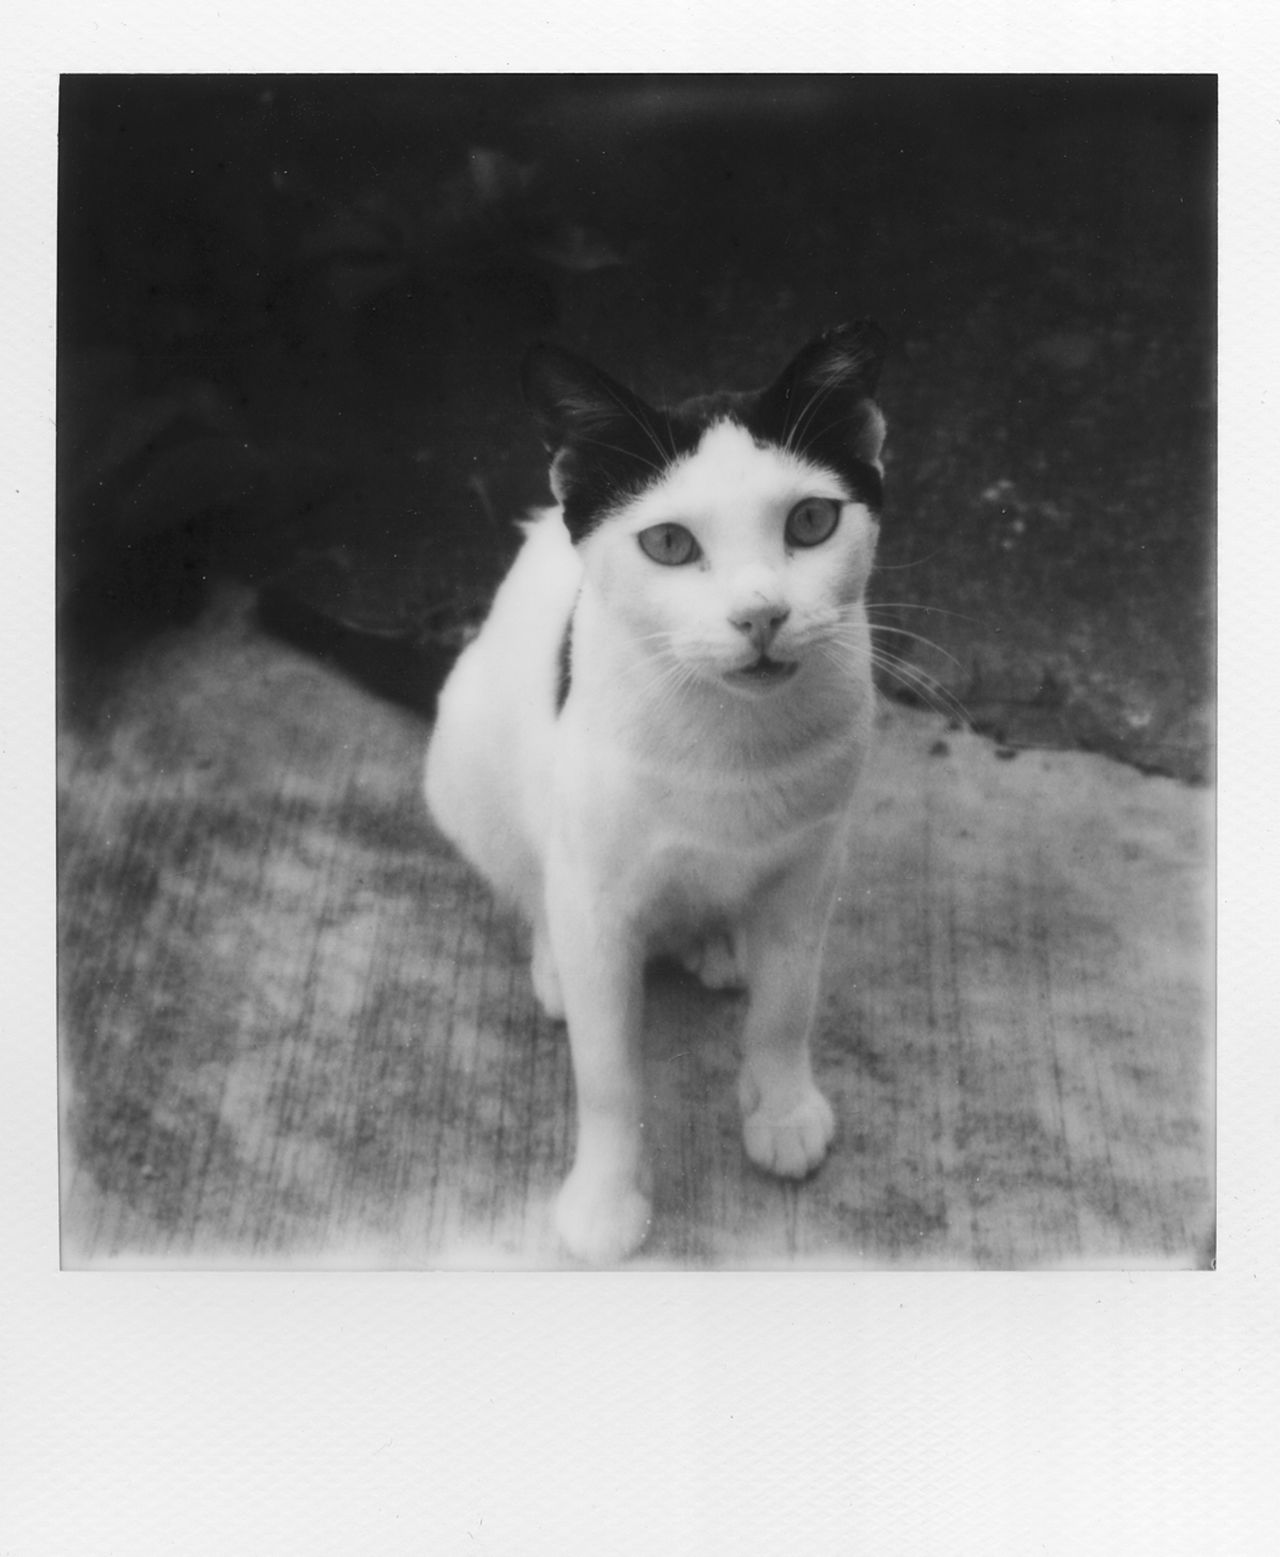 Animal Animal Themes Cat Close-up Day Domestic Animals Domestic Cat Feline Indoors  Looking At Camera Mammal No People One Animal Pets Portrait Whisker